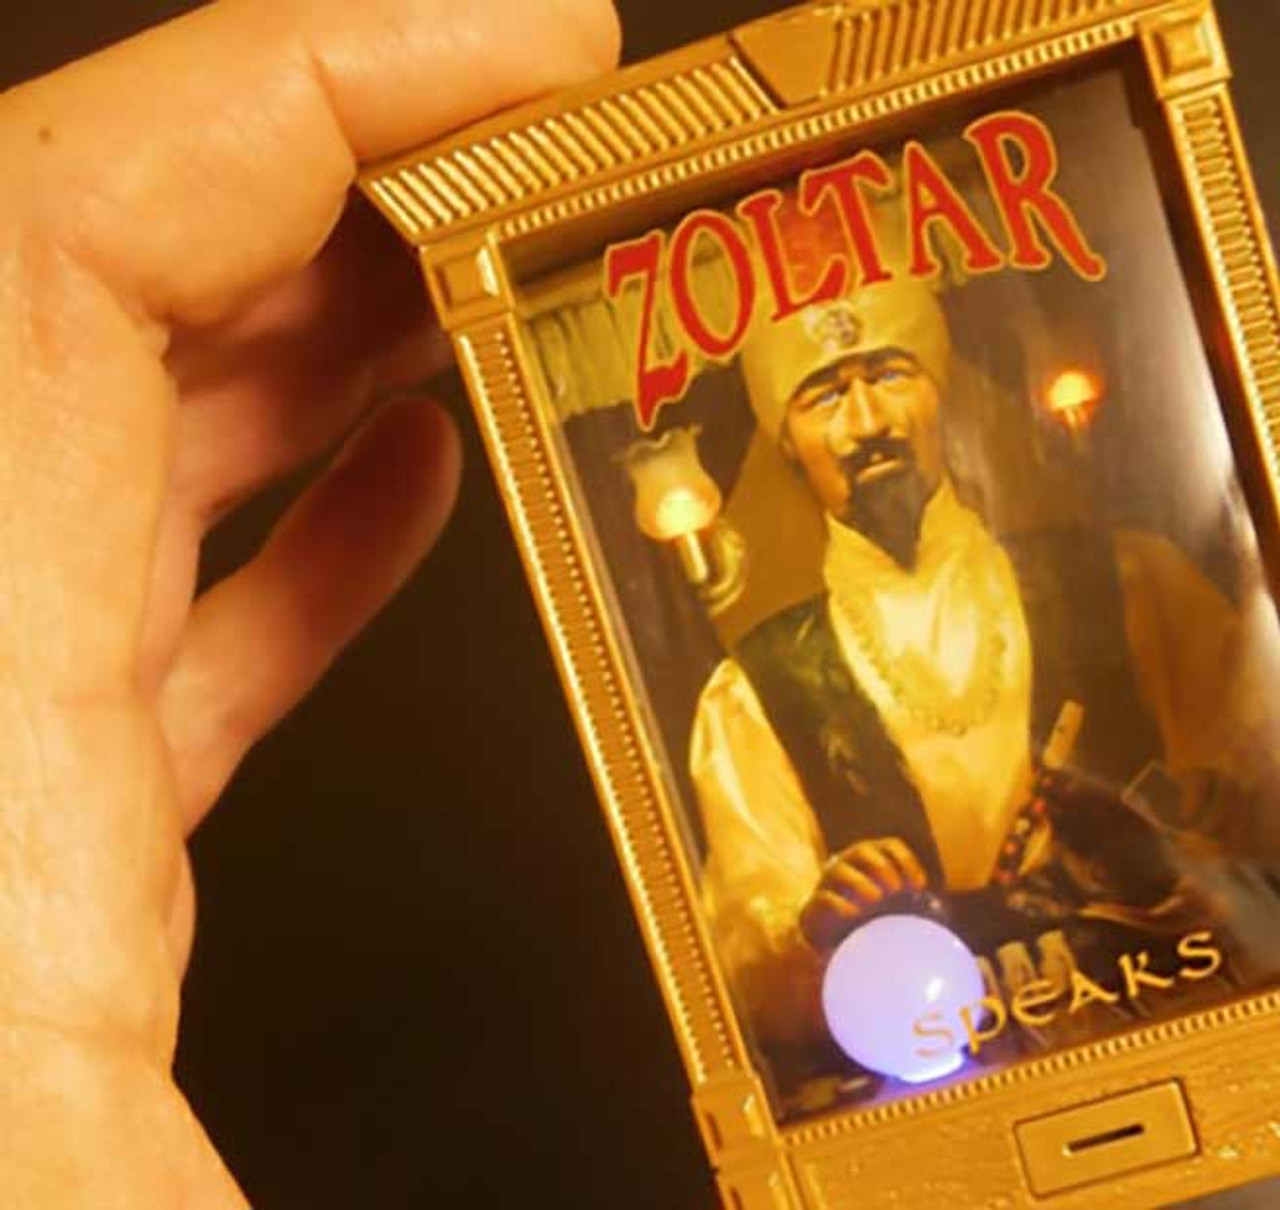 Zoltar Mini Fortune Teller